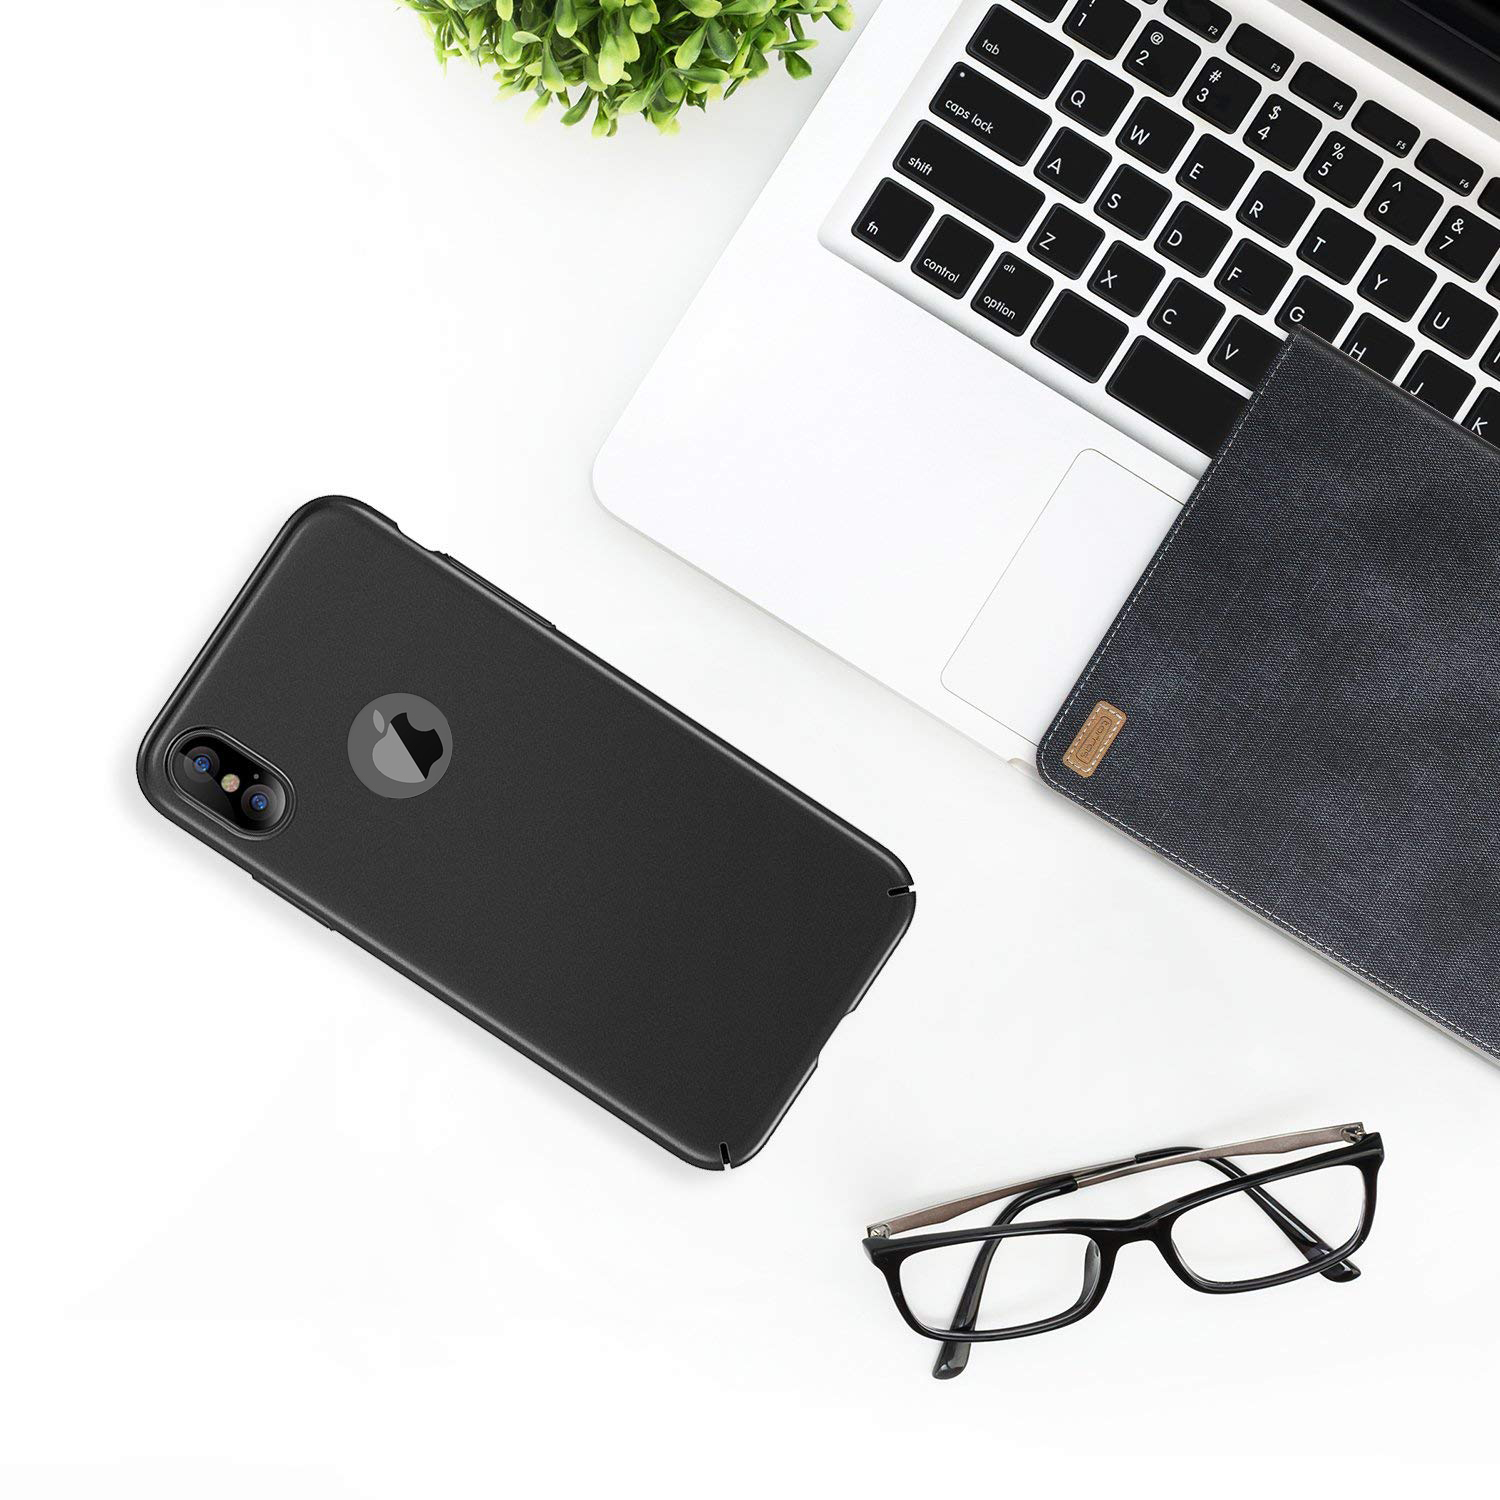 Shockproof-Hard-Back-Ultra-Thin-Slim-New-Bumper-Case-Cover-For-Apple-iPhone-X-XR miniatuur 19